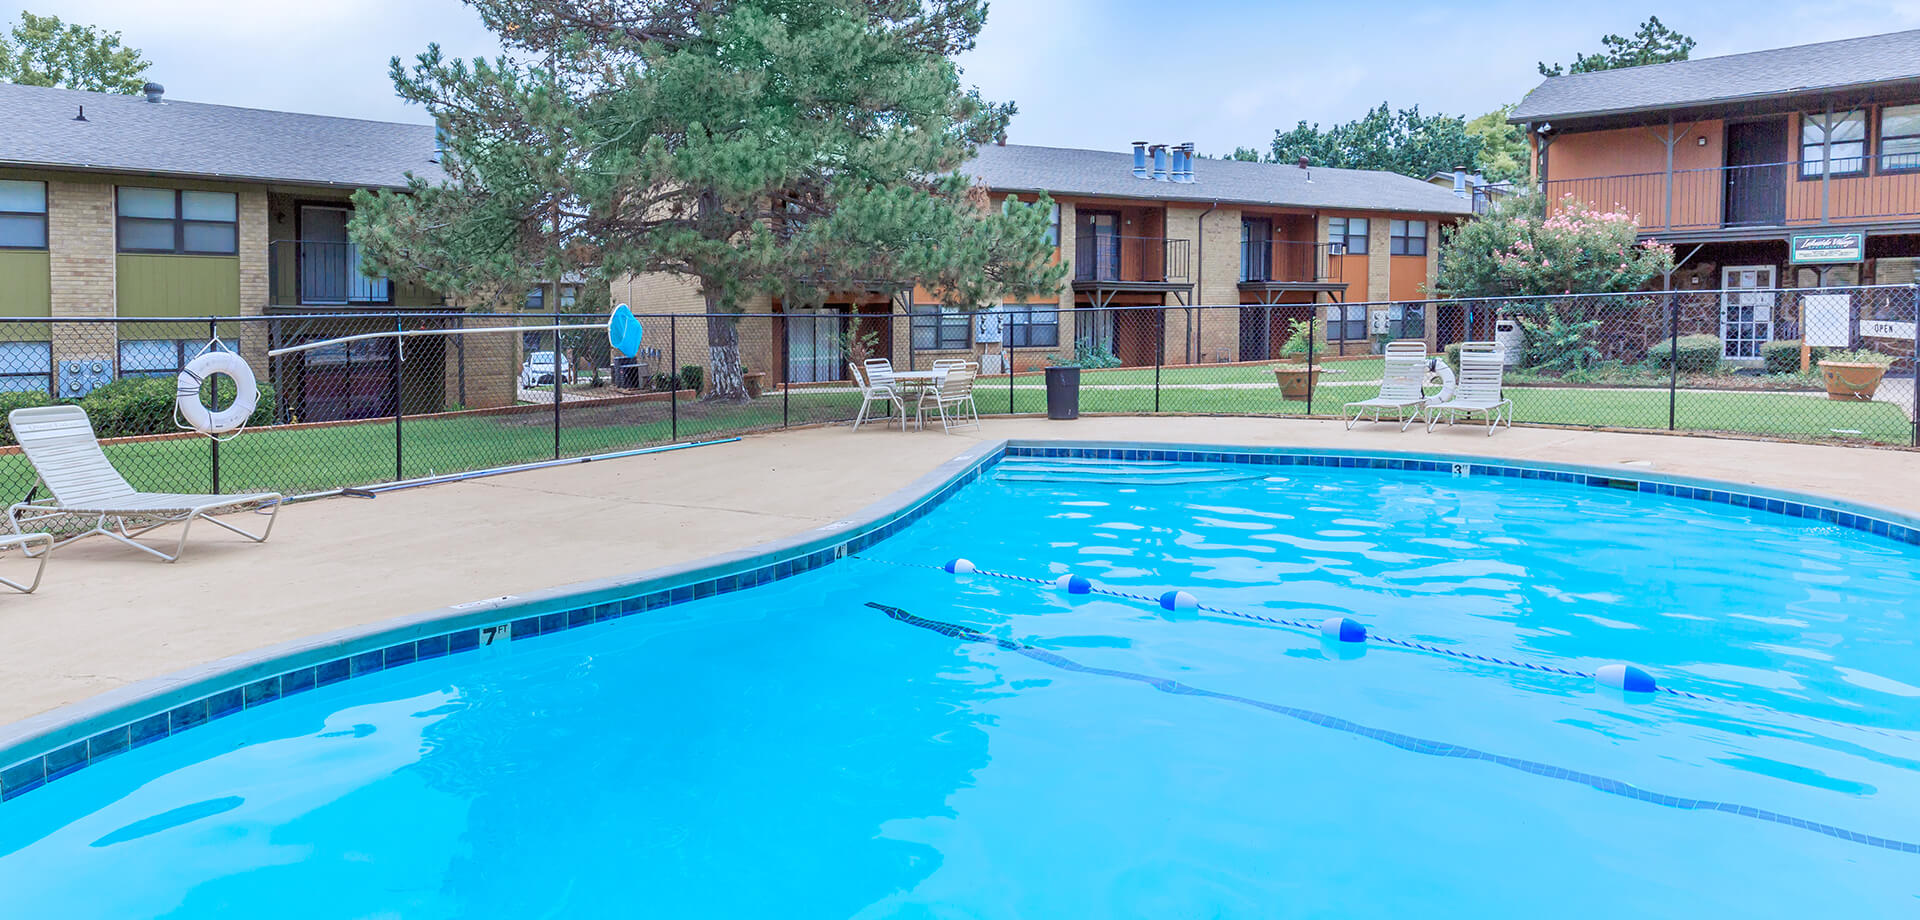 Lakeside Village Apartments Okc